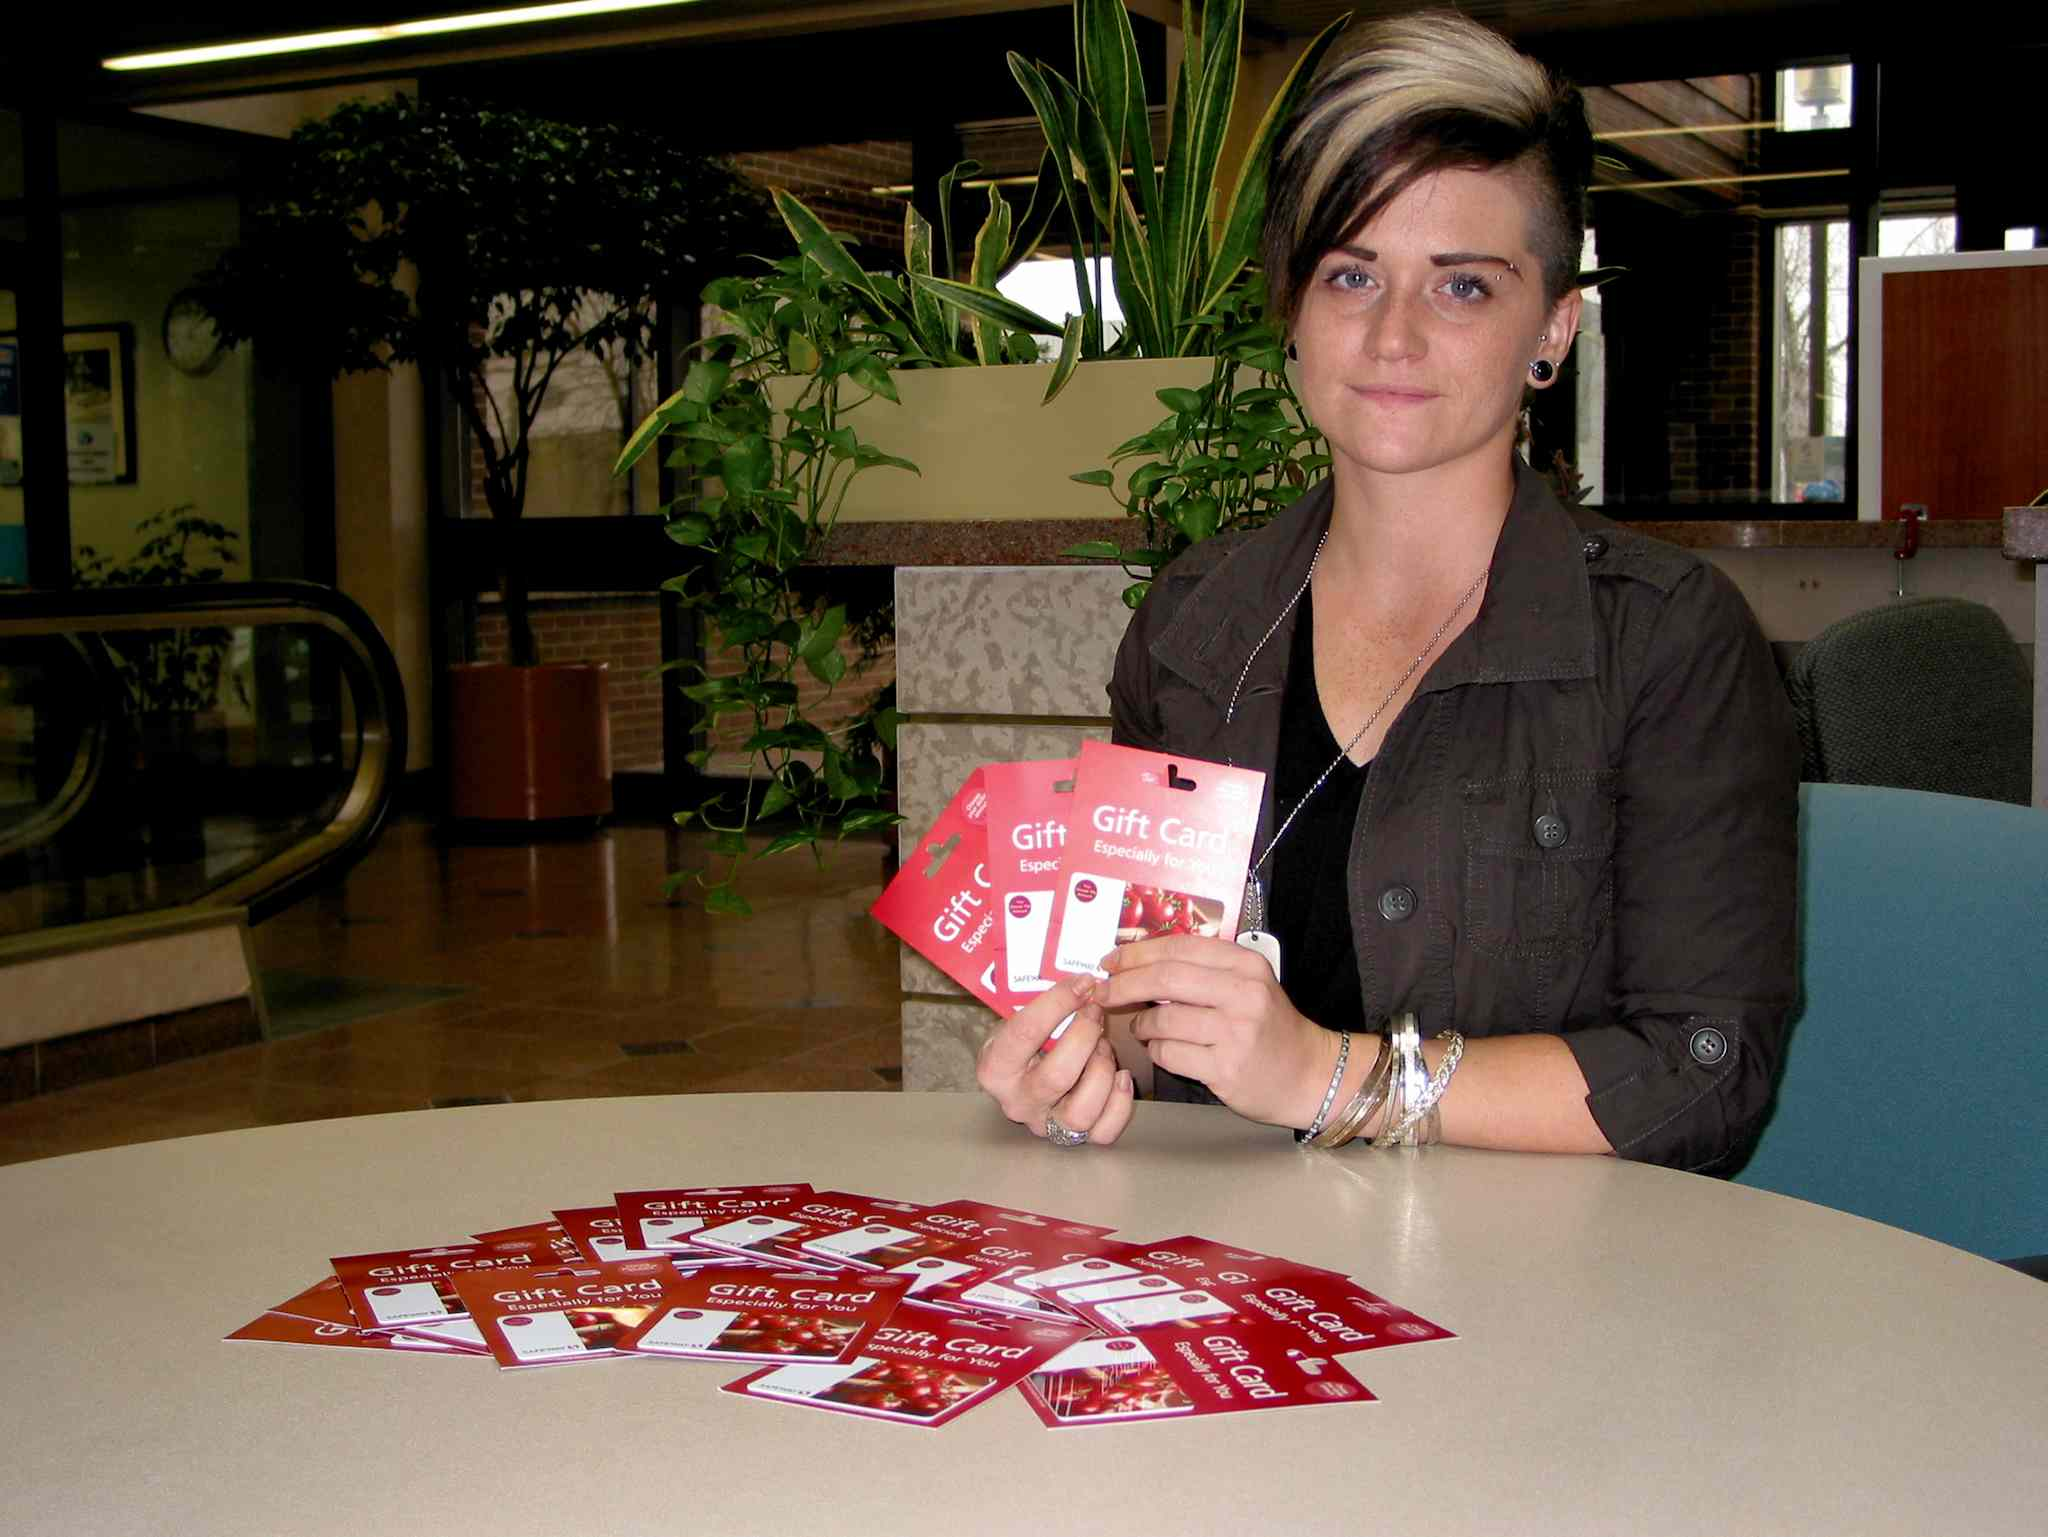 Ashley Meilleur, of Headingley, is collecting $10 grocery gift cards, money, warm clothing, sleeping bags and personal hygiene items to be distributed to homeless people in Winnipeg on Christmas Day.